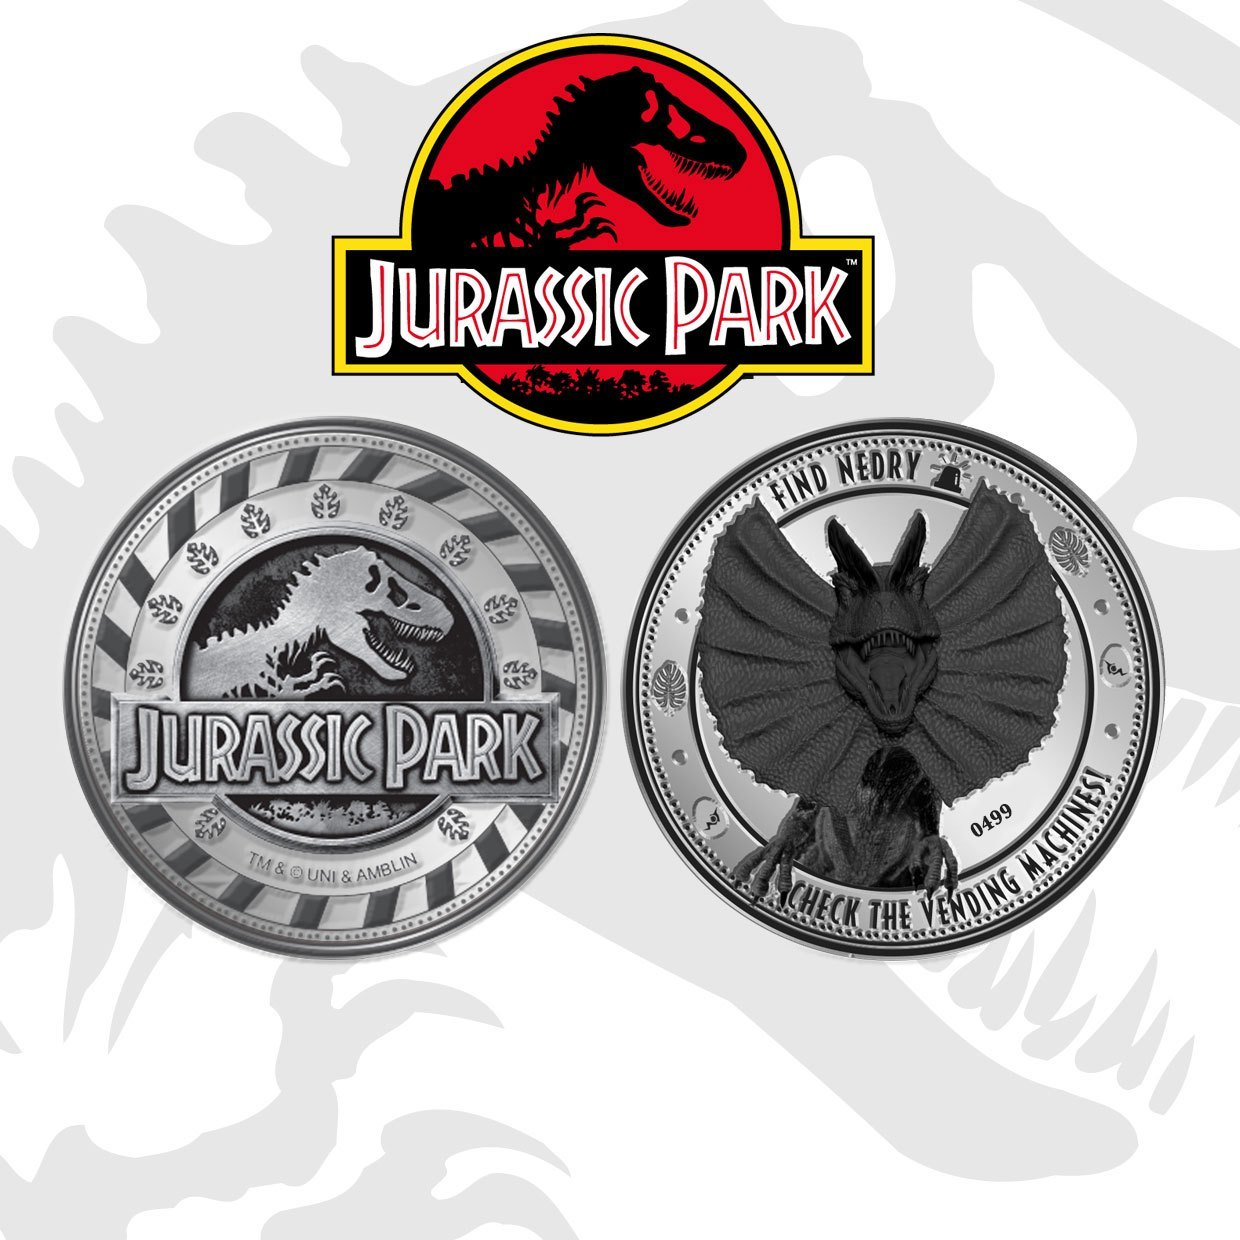 Jurassic Park: Collectable Coin - Jurassic Park image